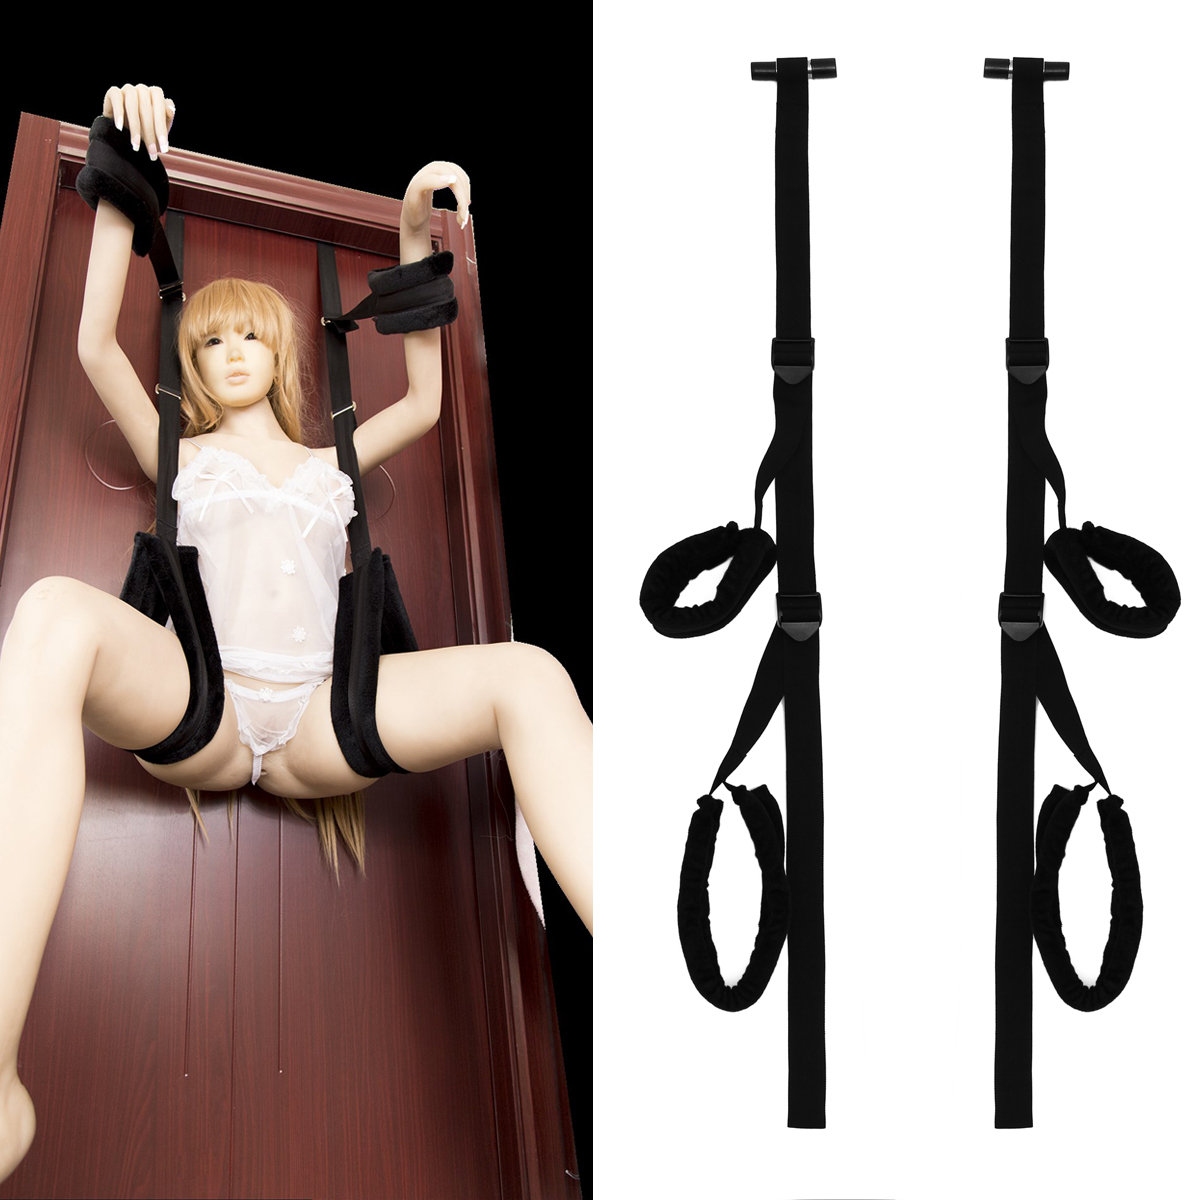 Stuck Door Adjustable Wrist Lap Restriants Sex Swings Bondage Boutique For Couples